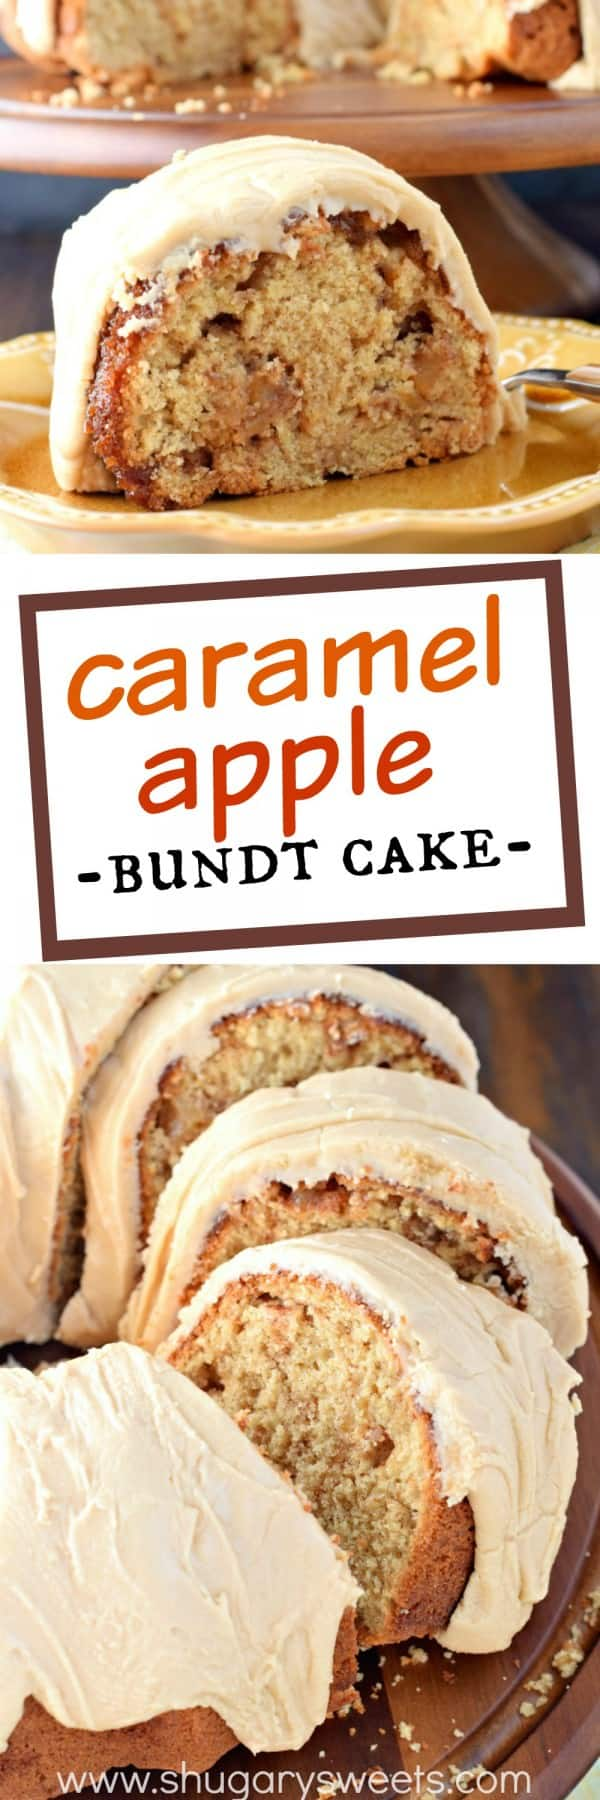 Apple Spice Bundt Cake With Caramel Frosting